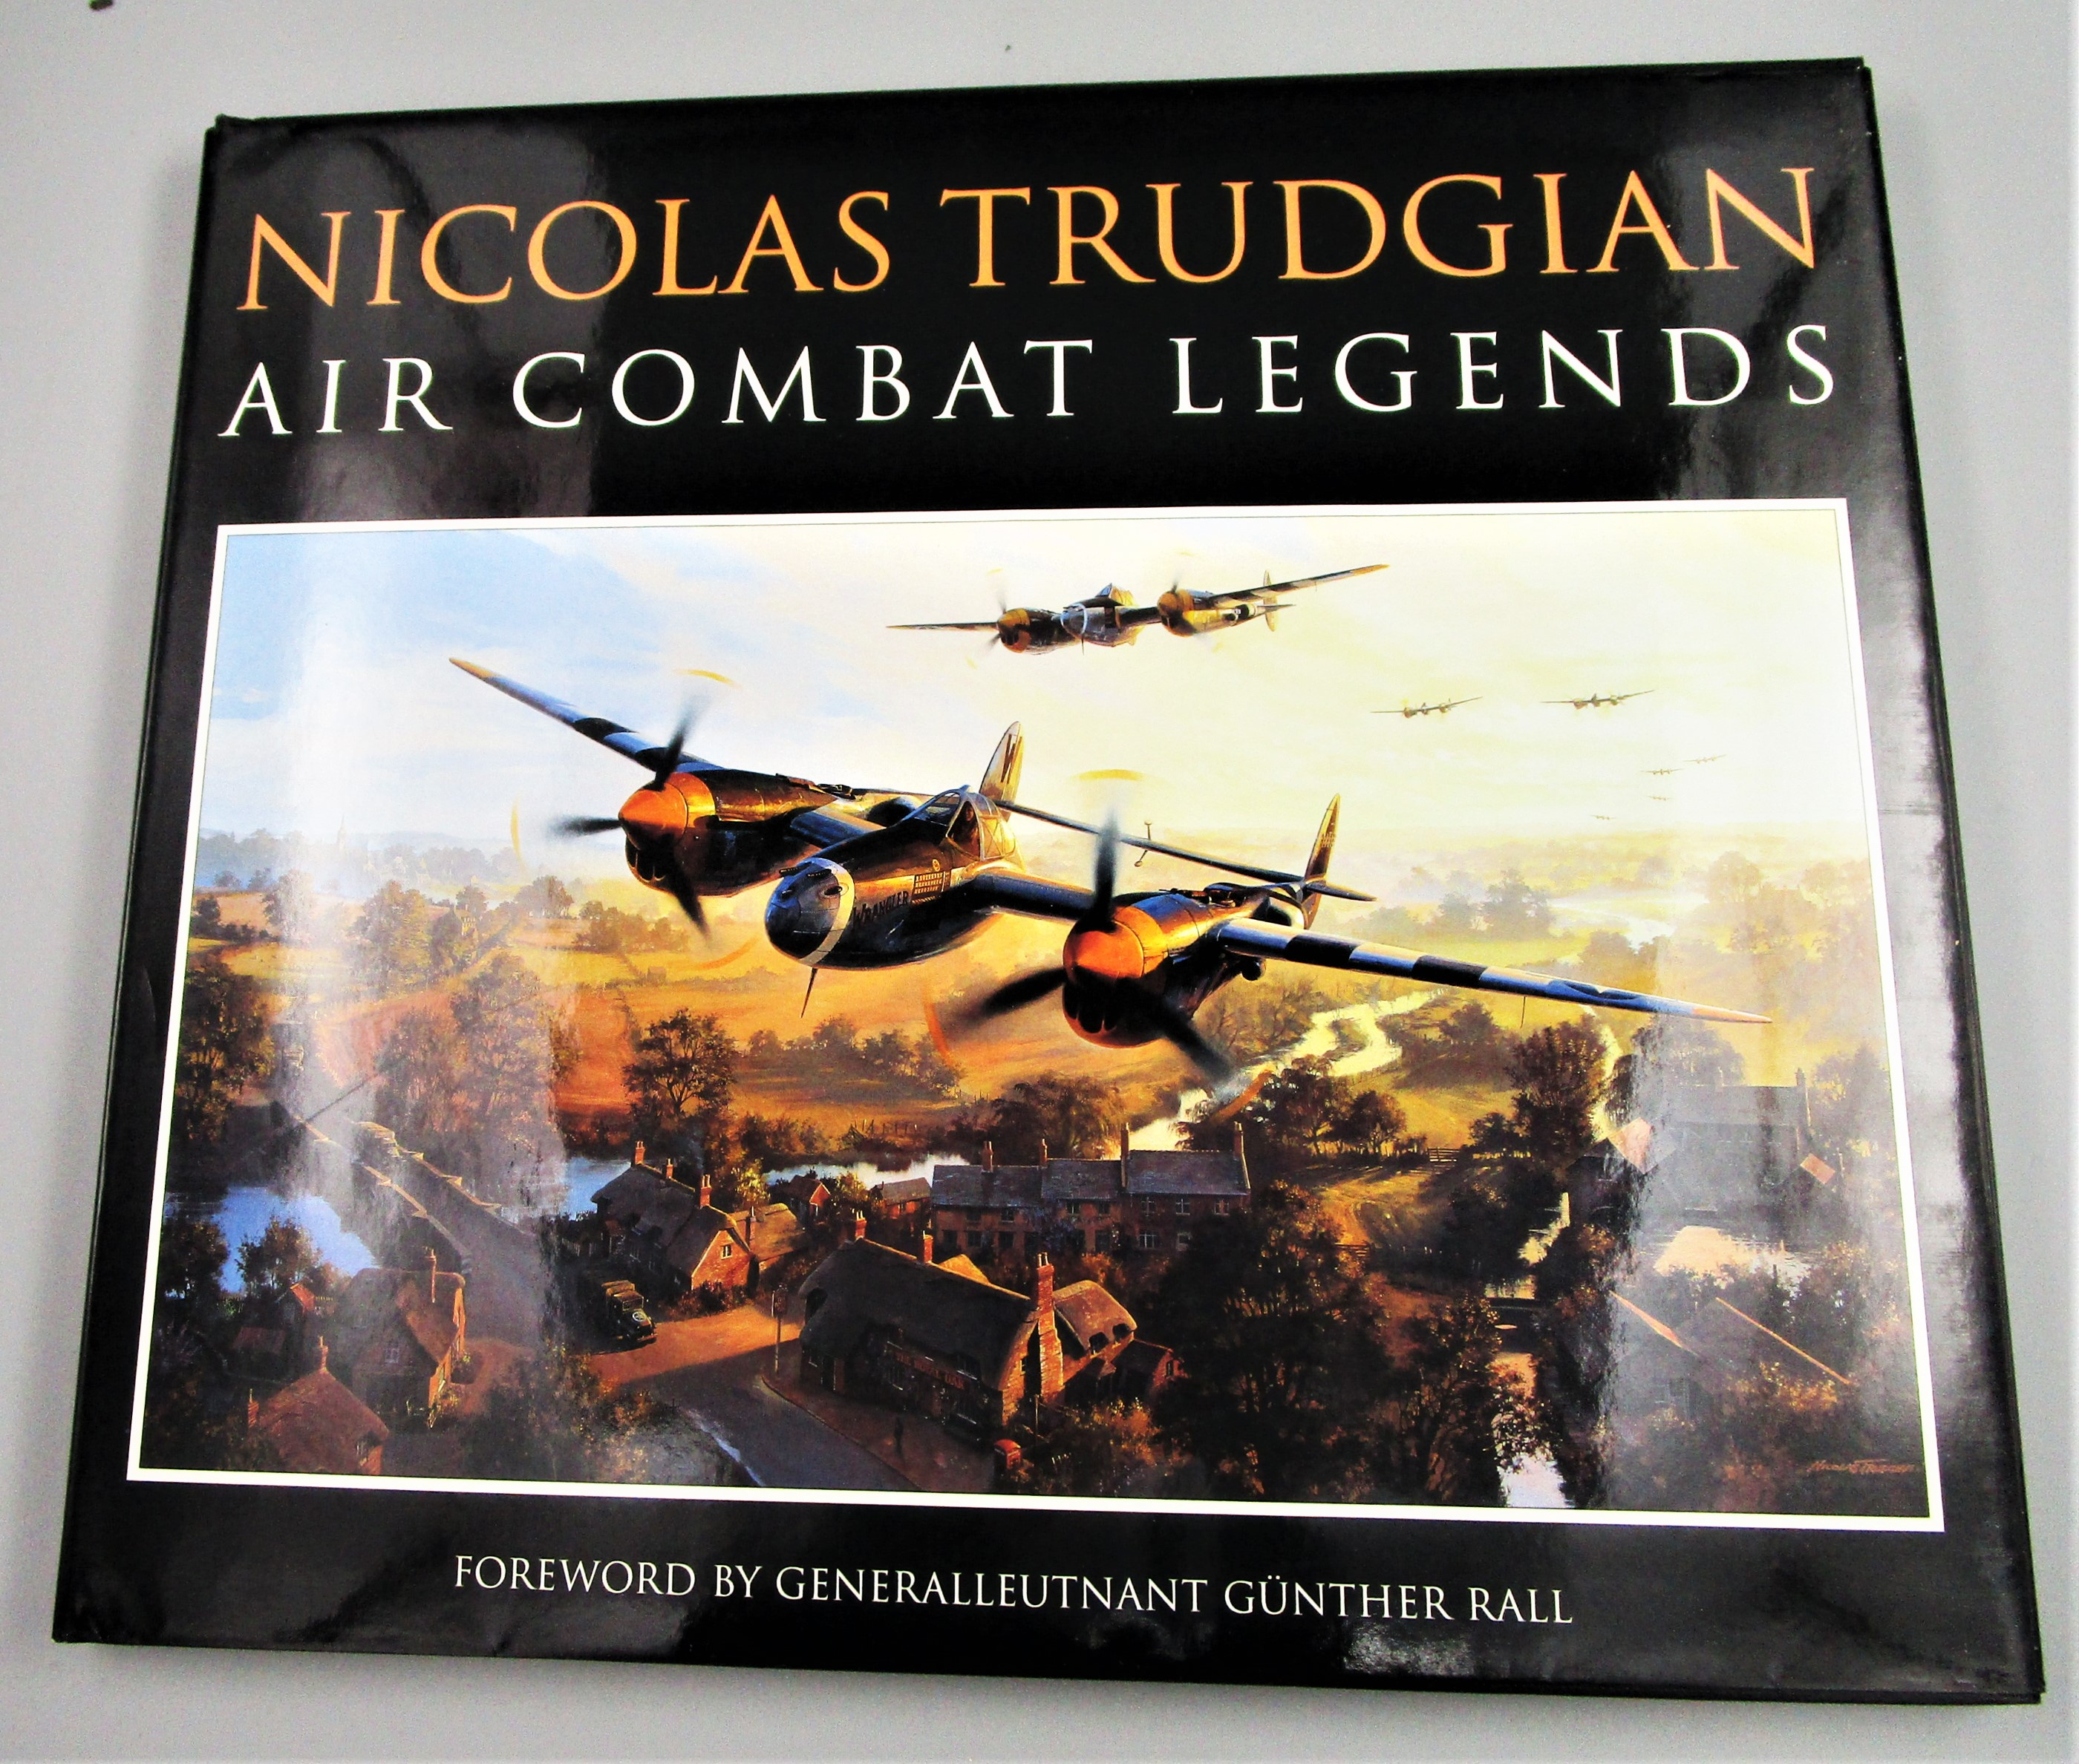 AIR COMBAT LEGENDS, by Nicolas Trudgian - 1998 SIGNED